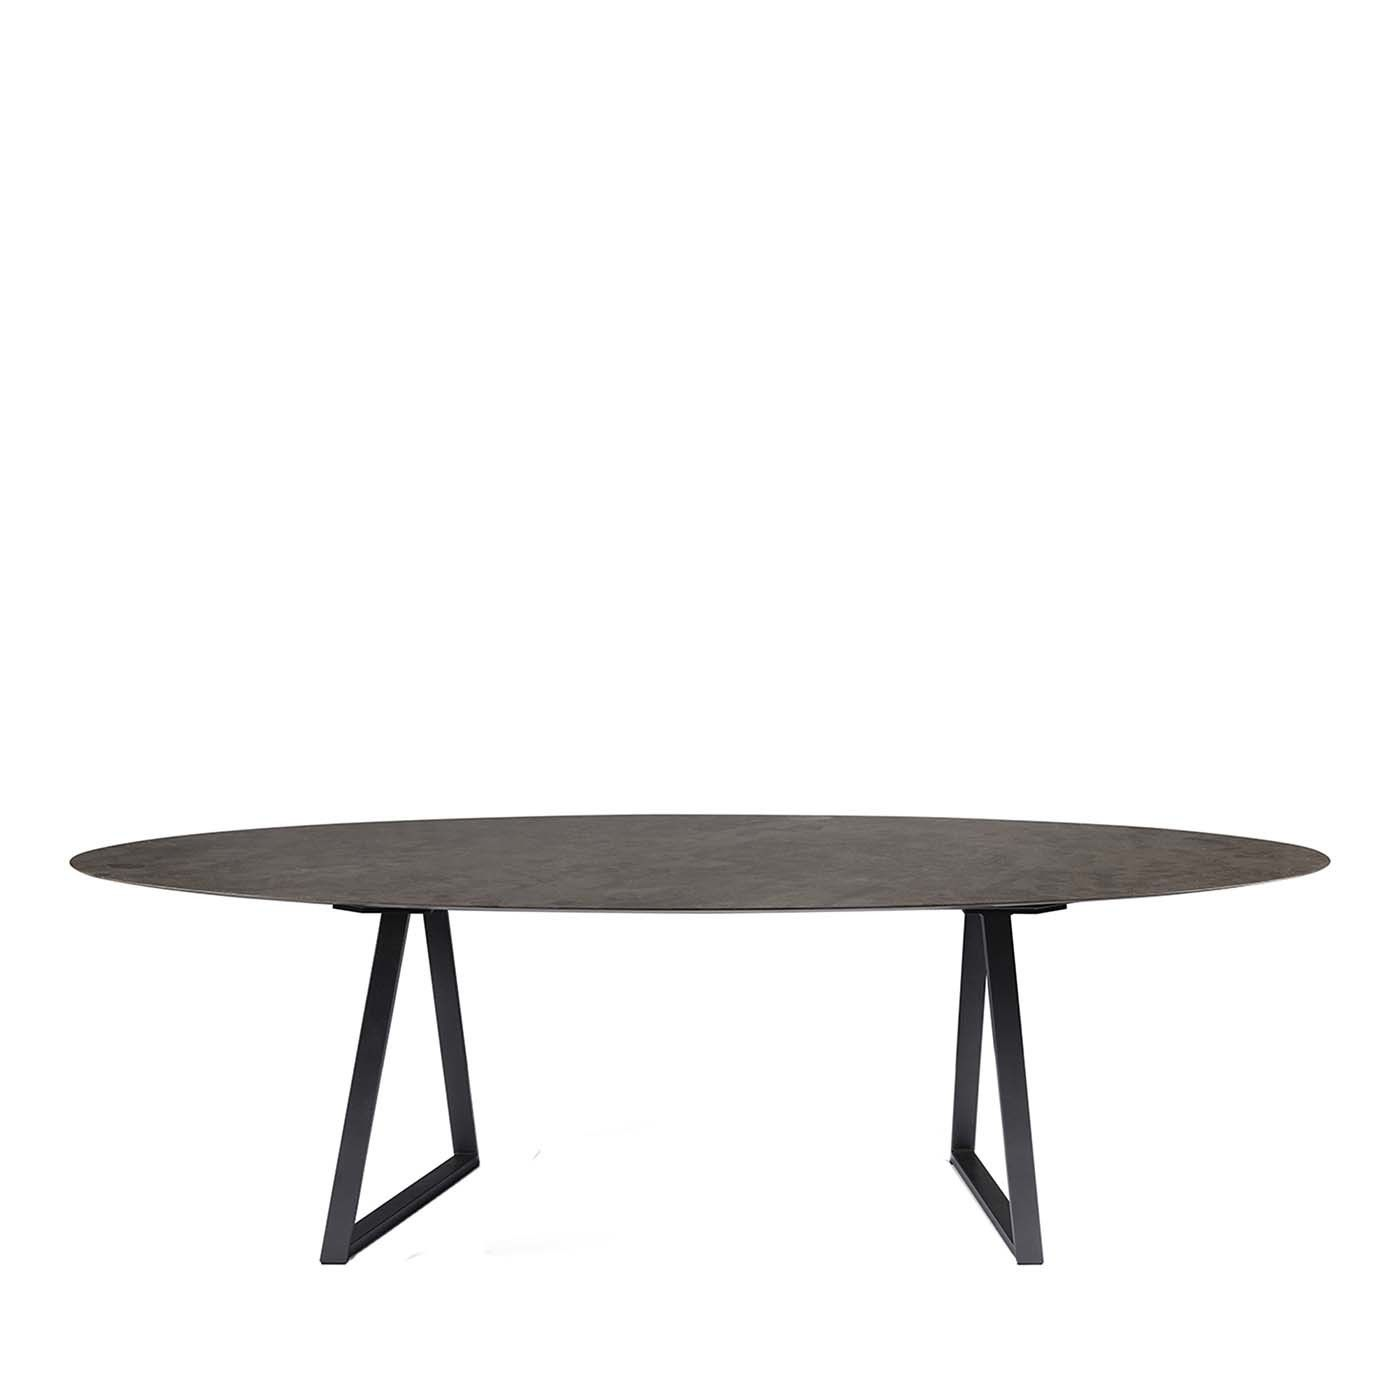 Dritto Oval Dining Table By Piero Lissoni Dining Table Table